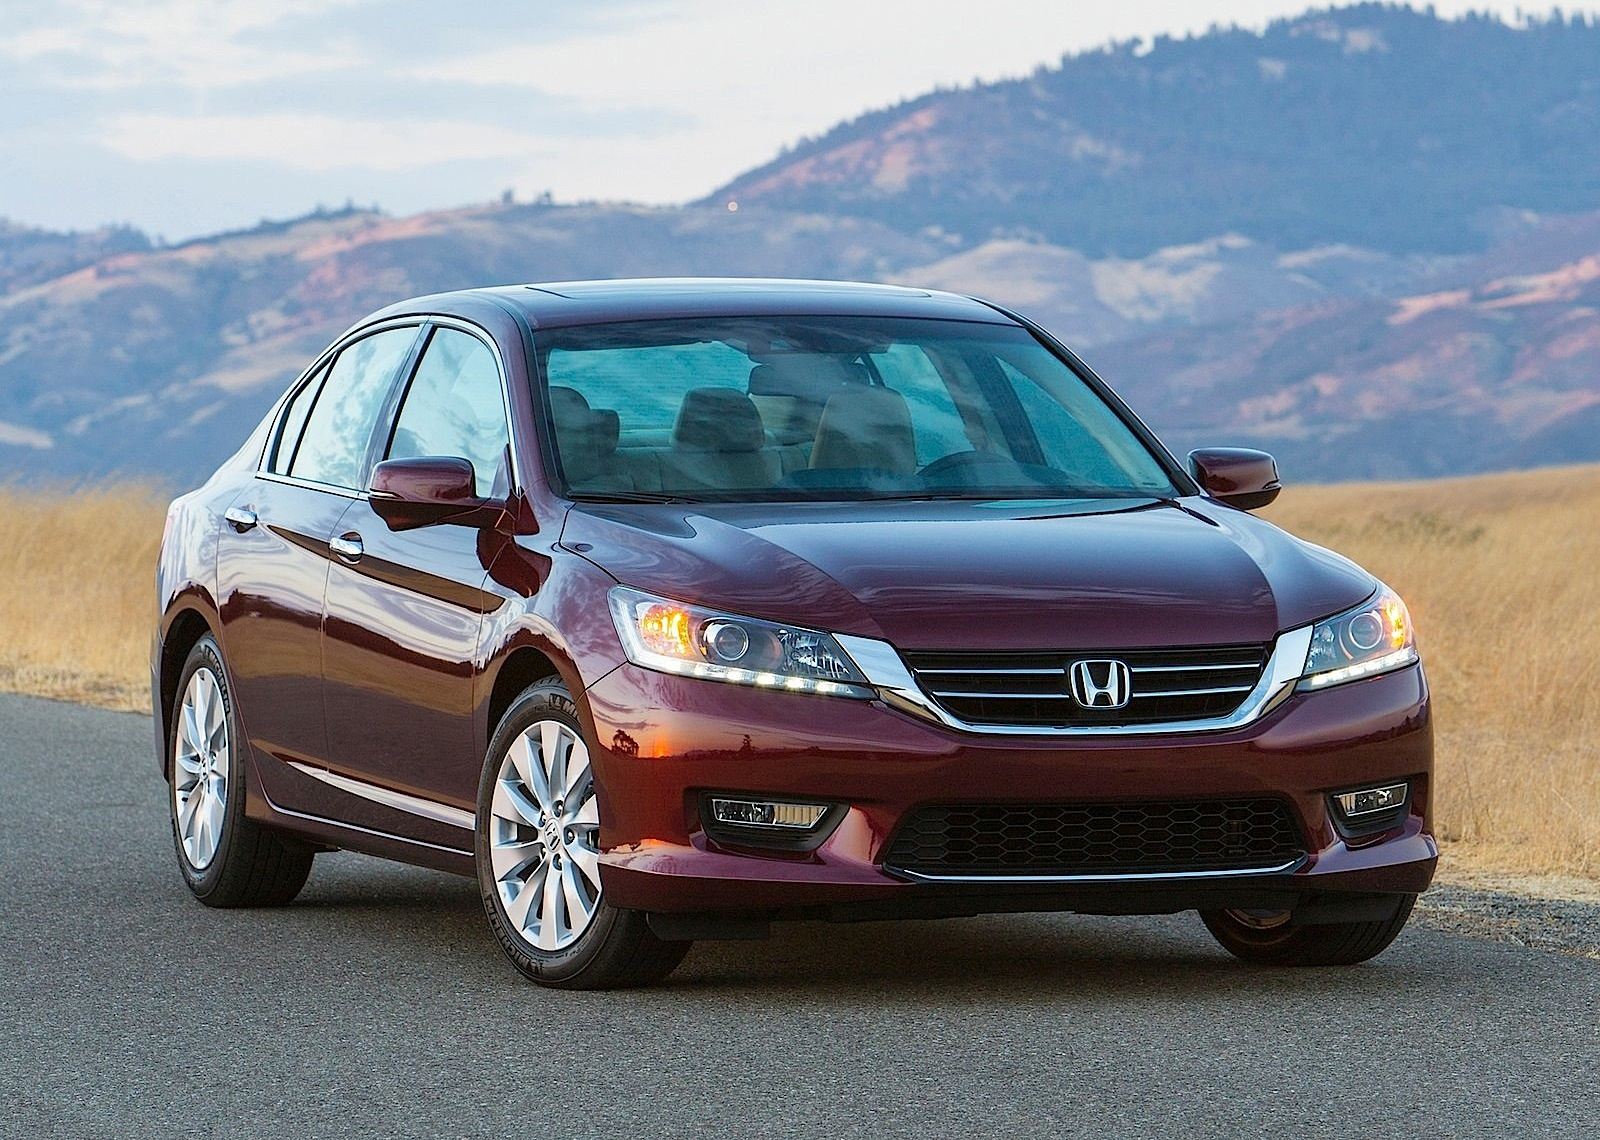 HONDA Accord - 2012, 2013, 2014, 2015 - autoevolution